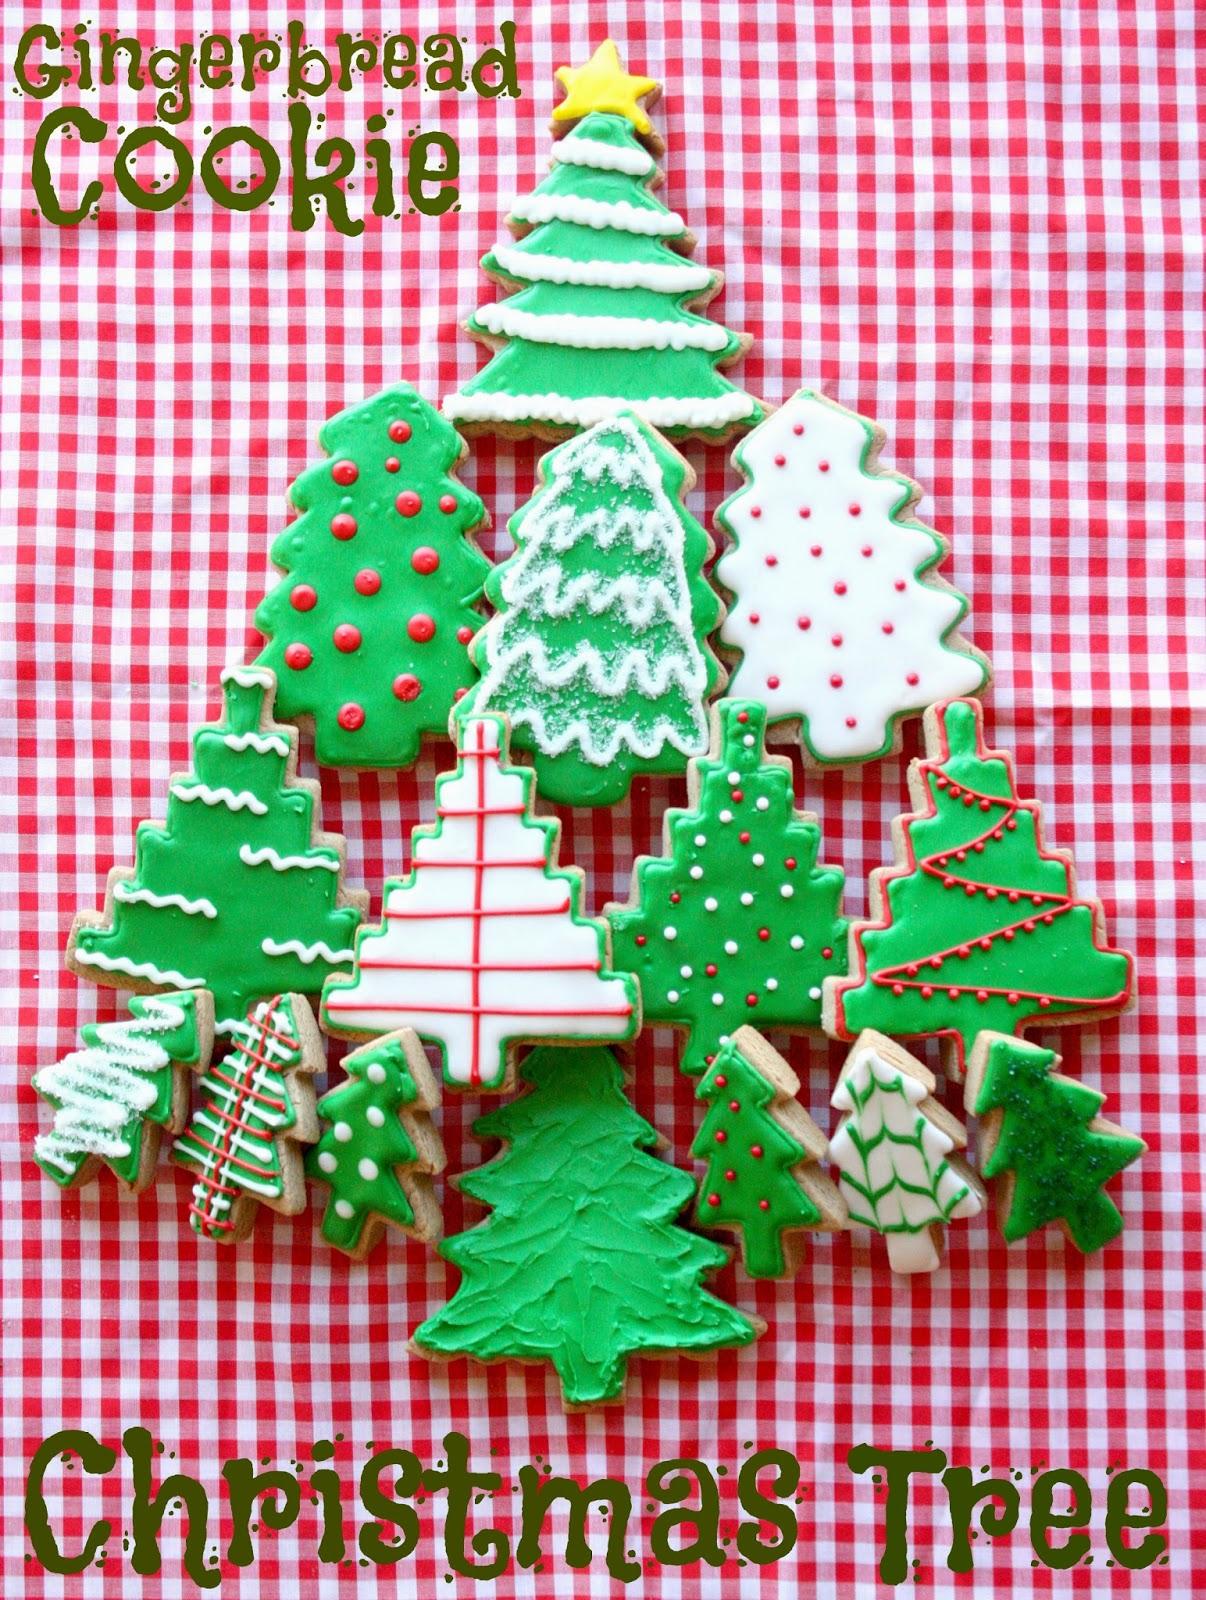 Munchkin Munchies: Gingerbread Cookie Christmas Tree